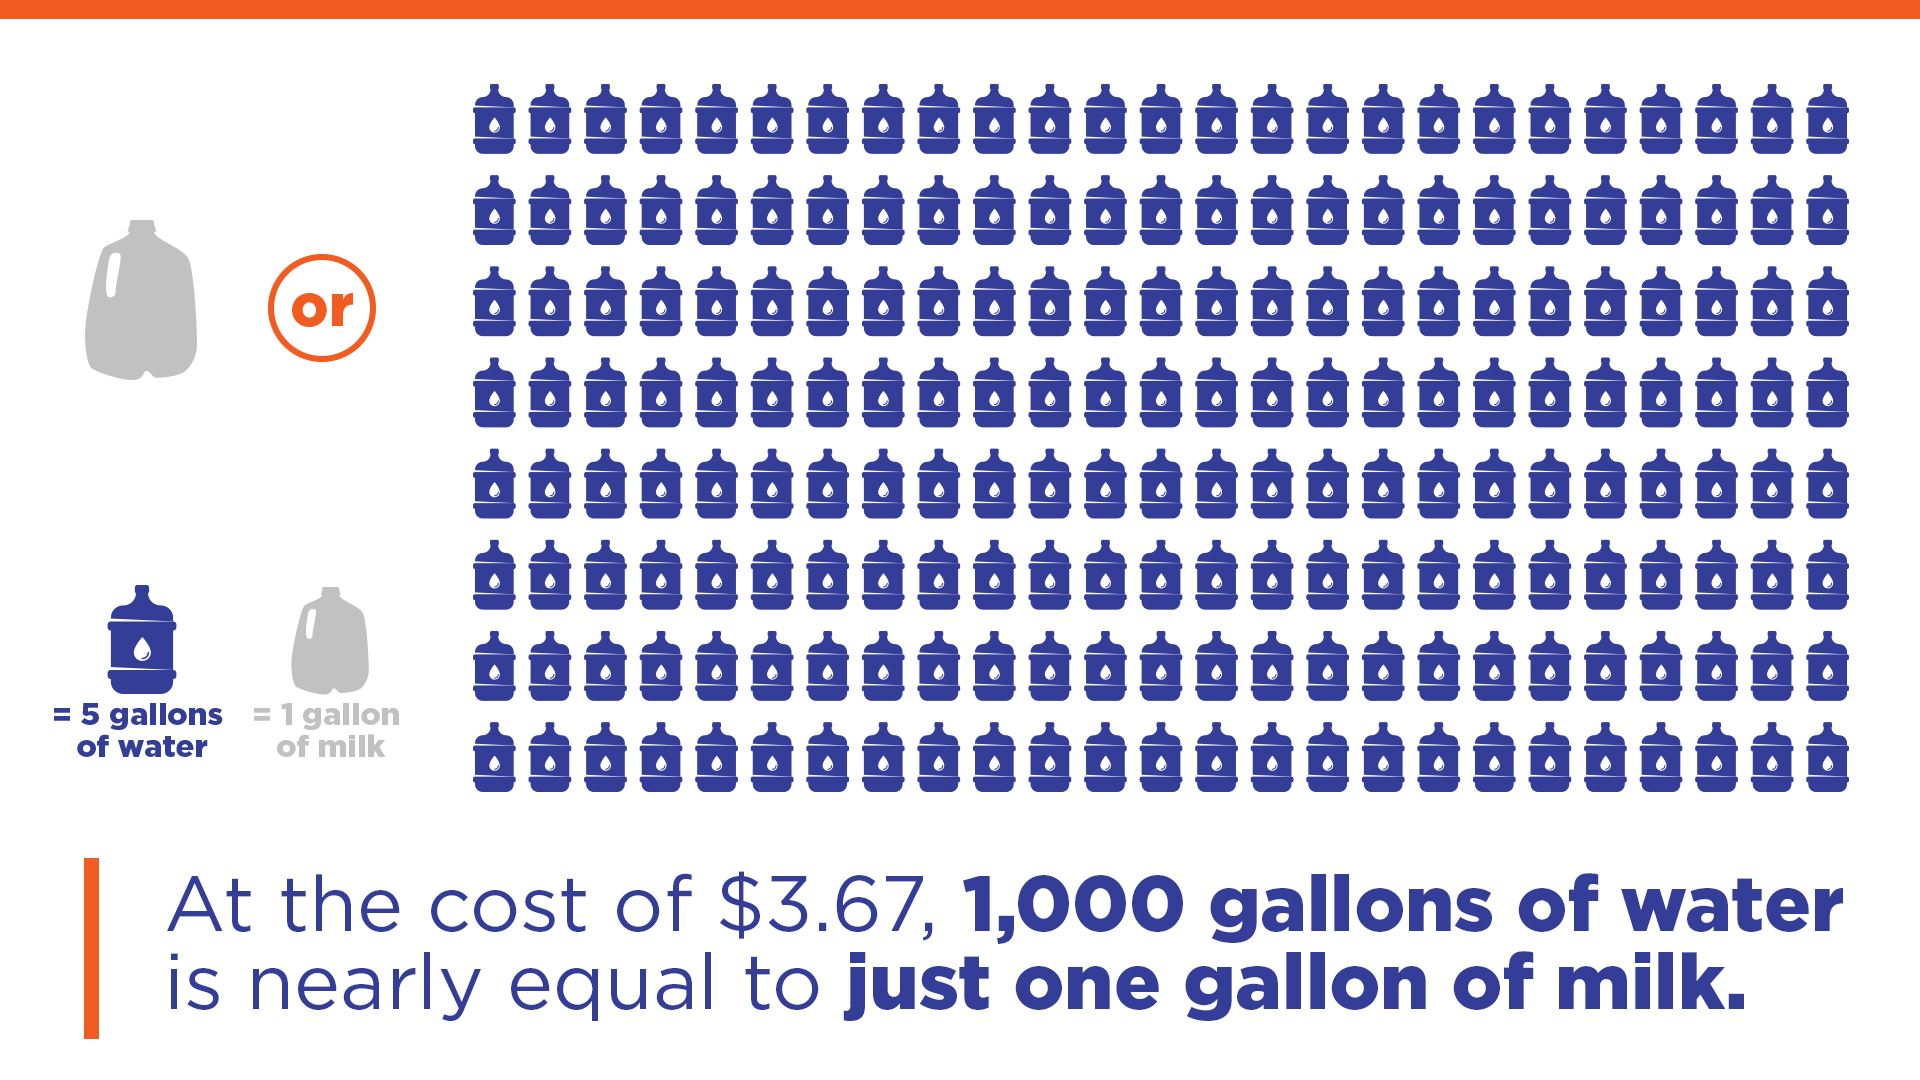 Infographic displaying the cost of 1,000 gallons of water compared to 1 gallon of milk